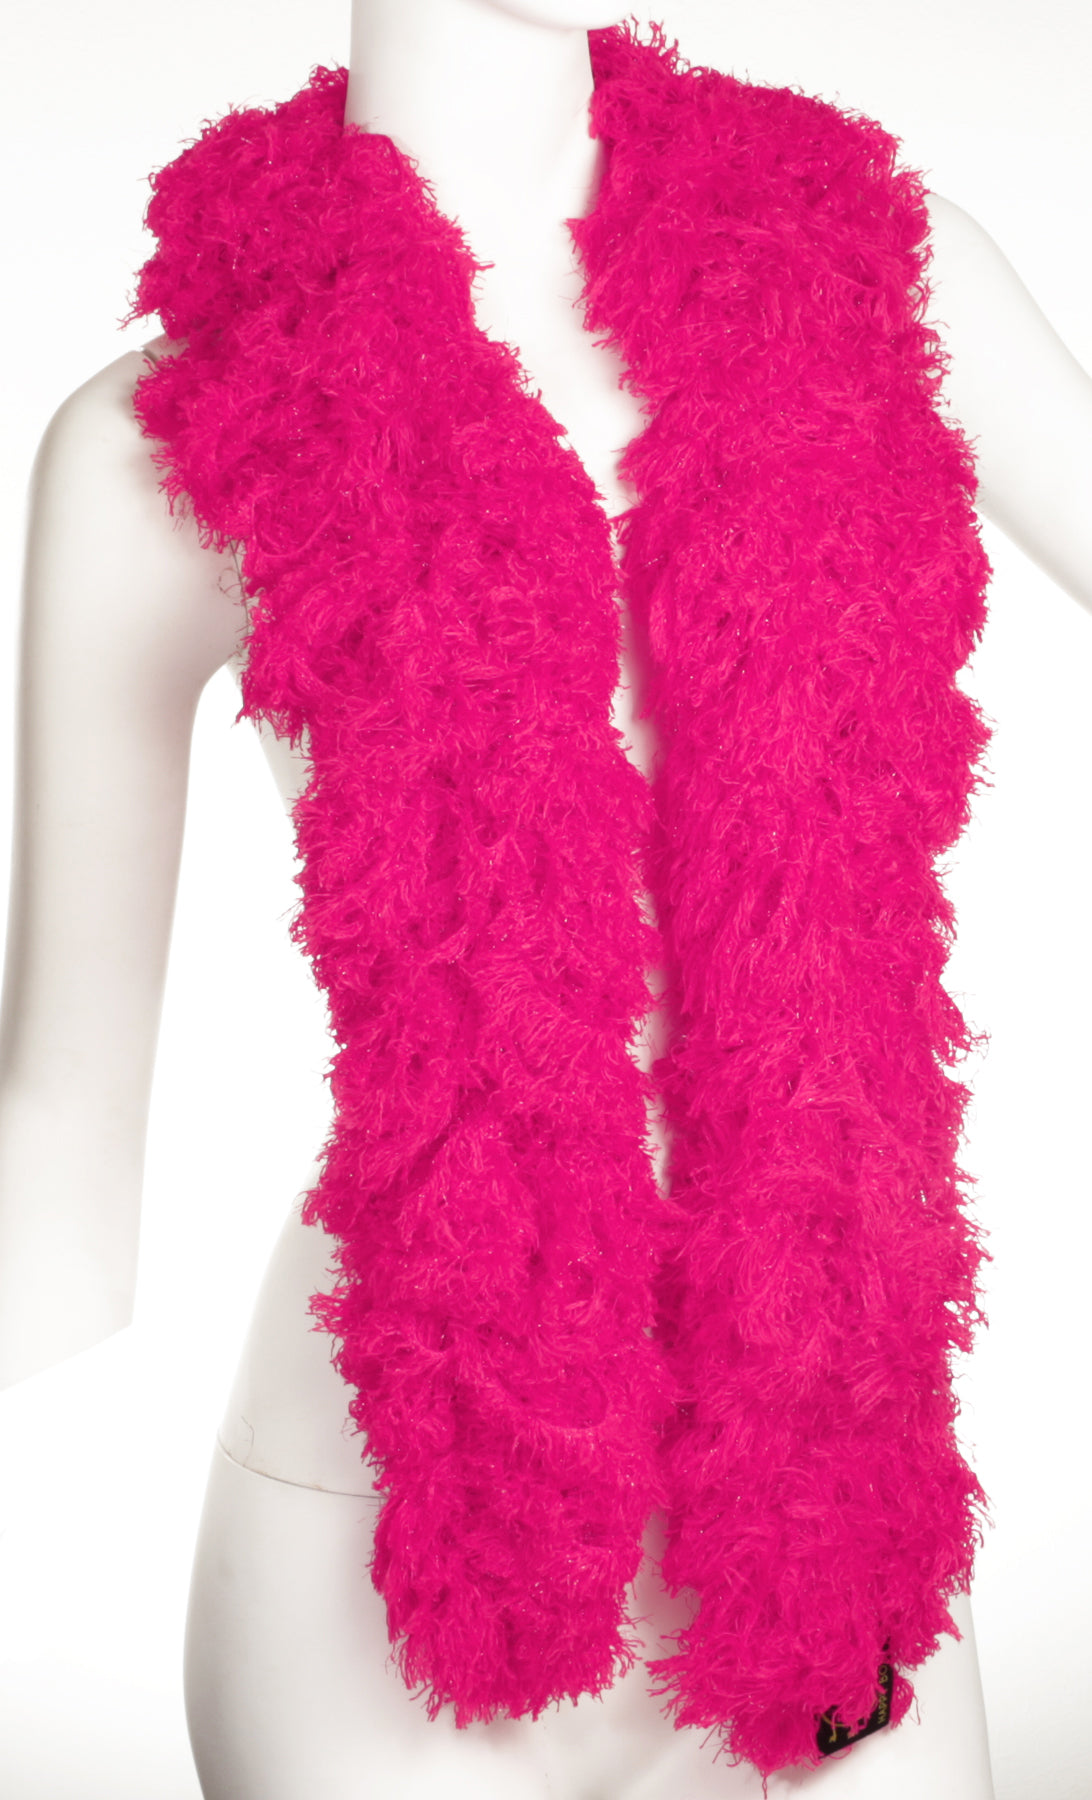 SUPER Sized Featherless Boa - Hot Pink - Happy Boa: Faux Feather Boa